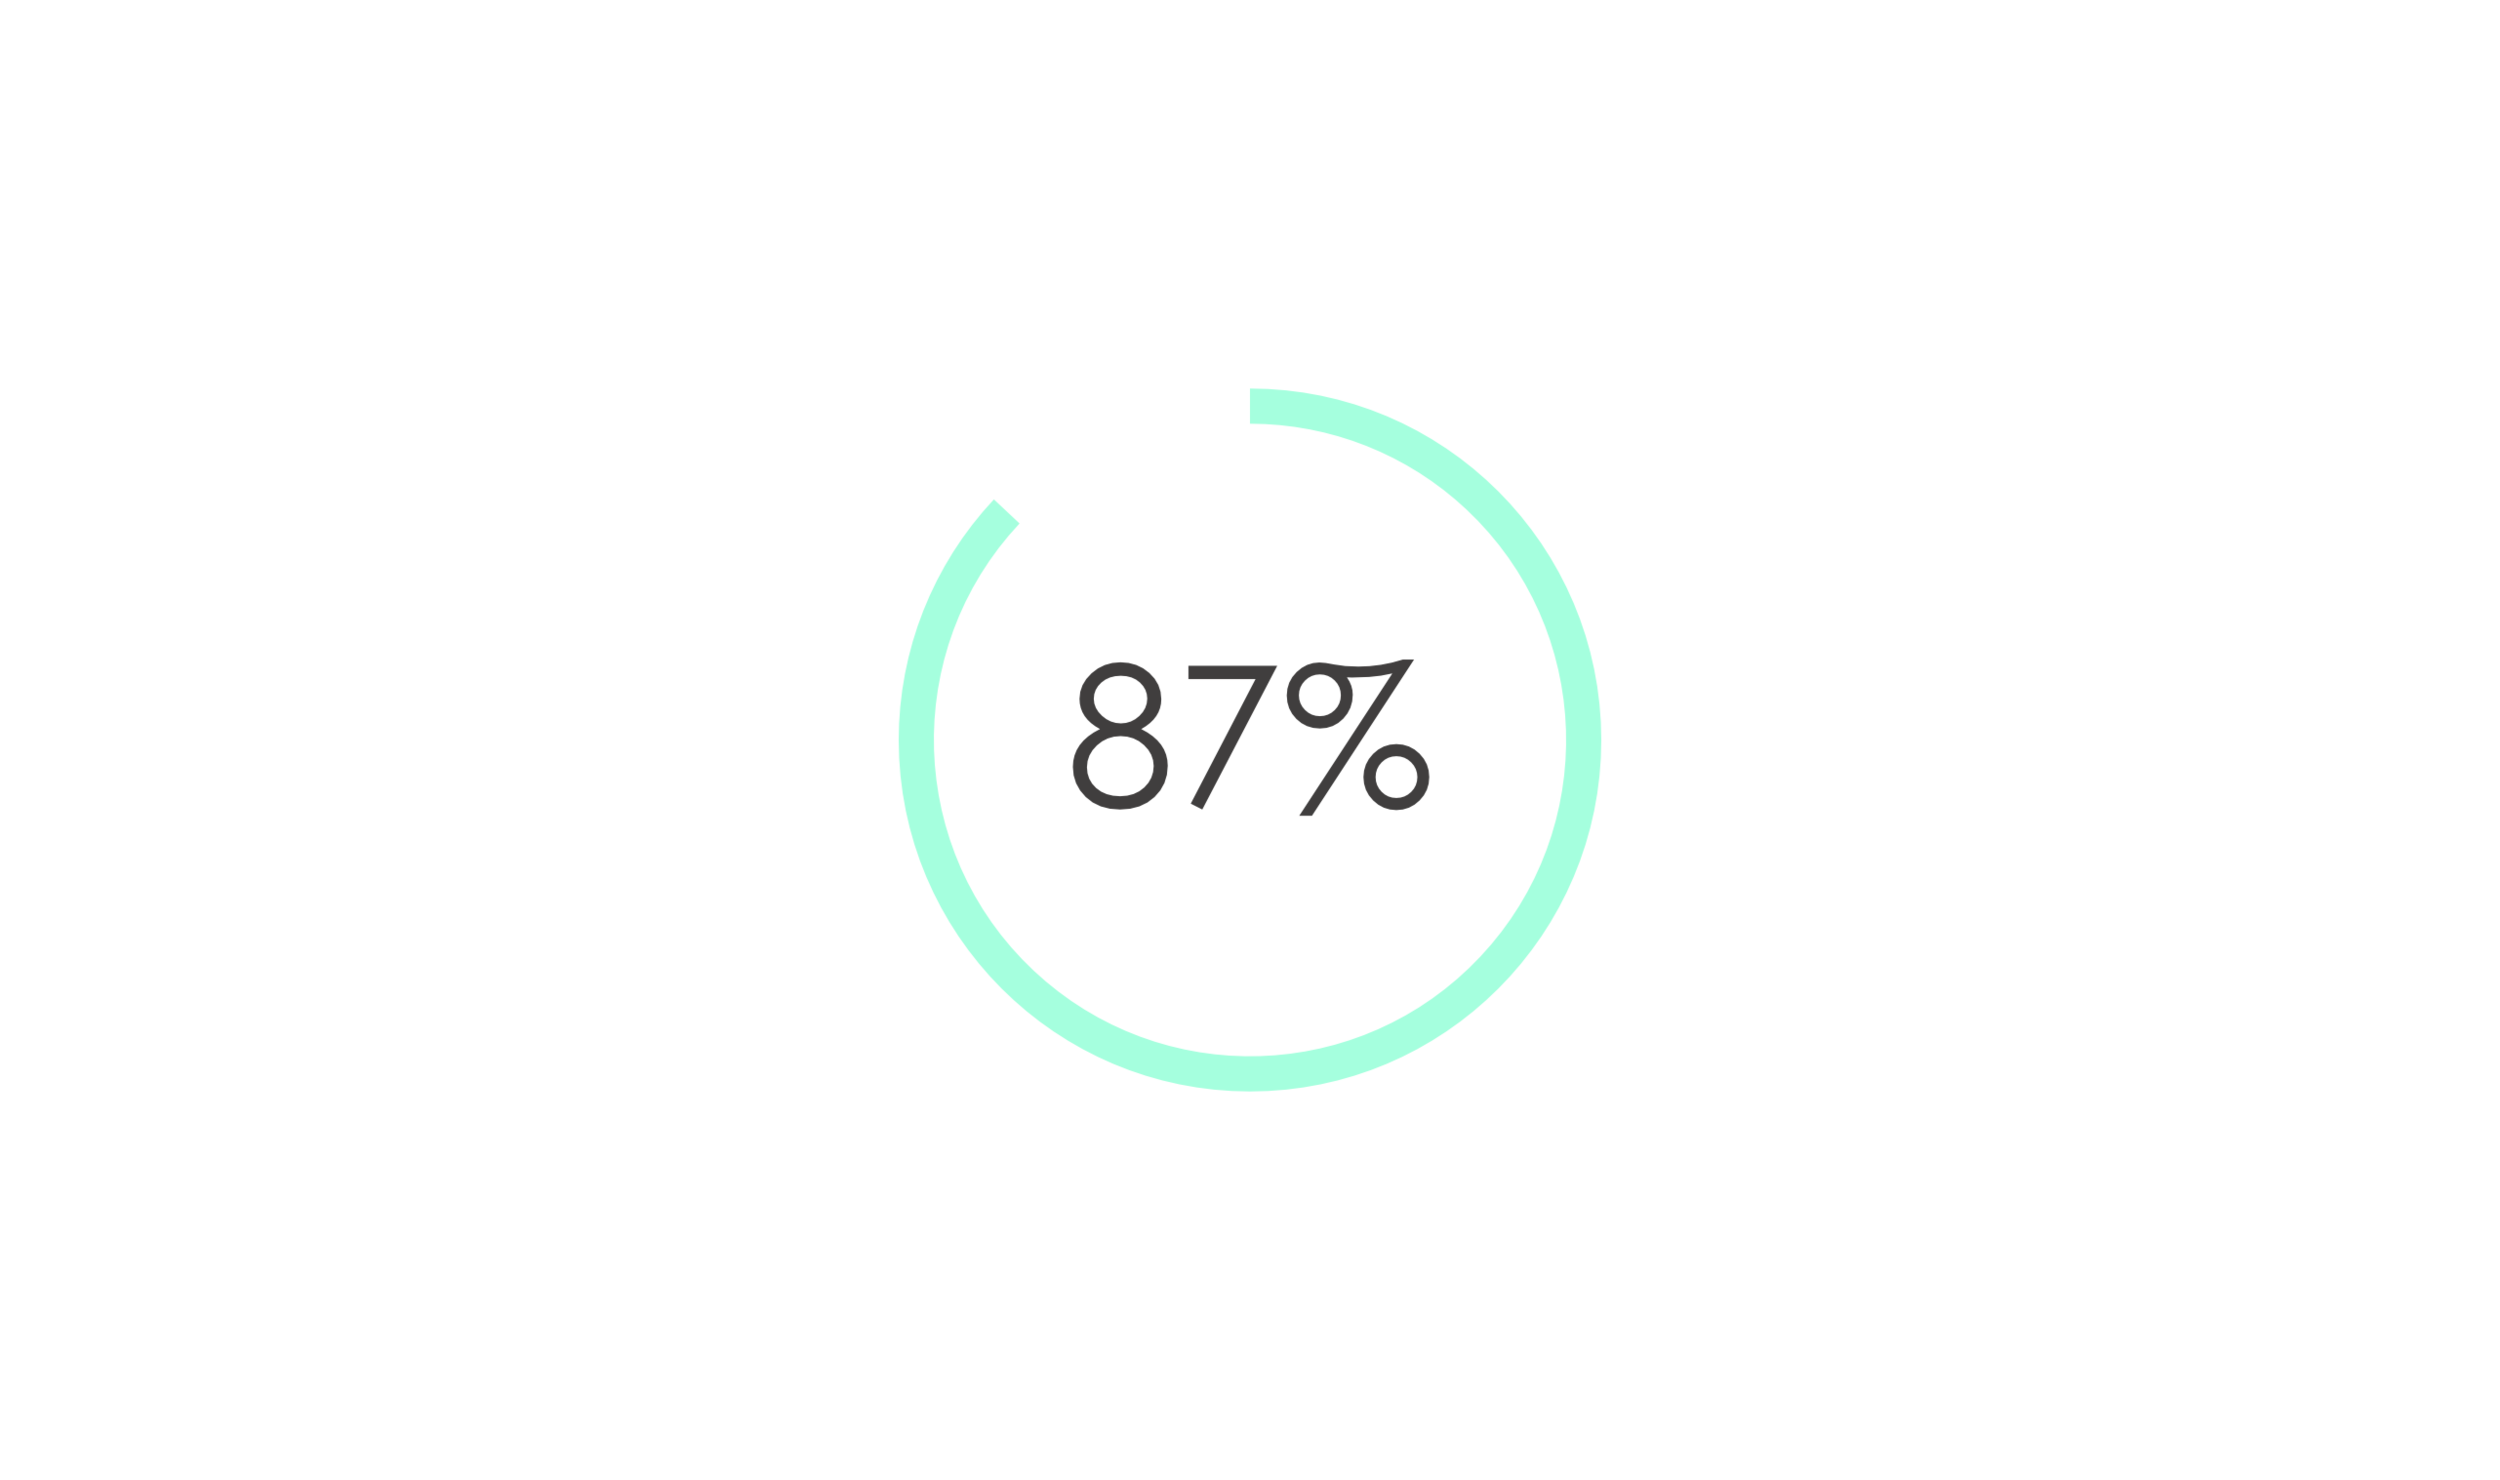 87% pie.png